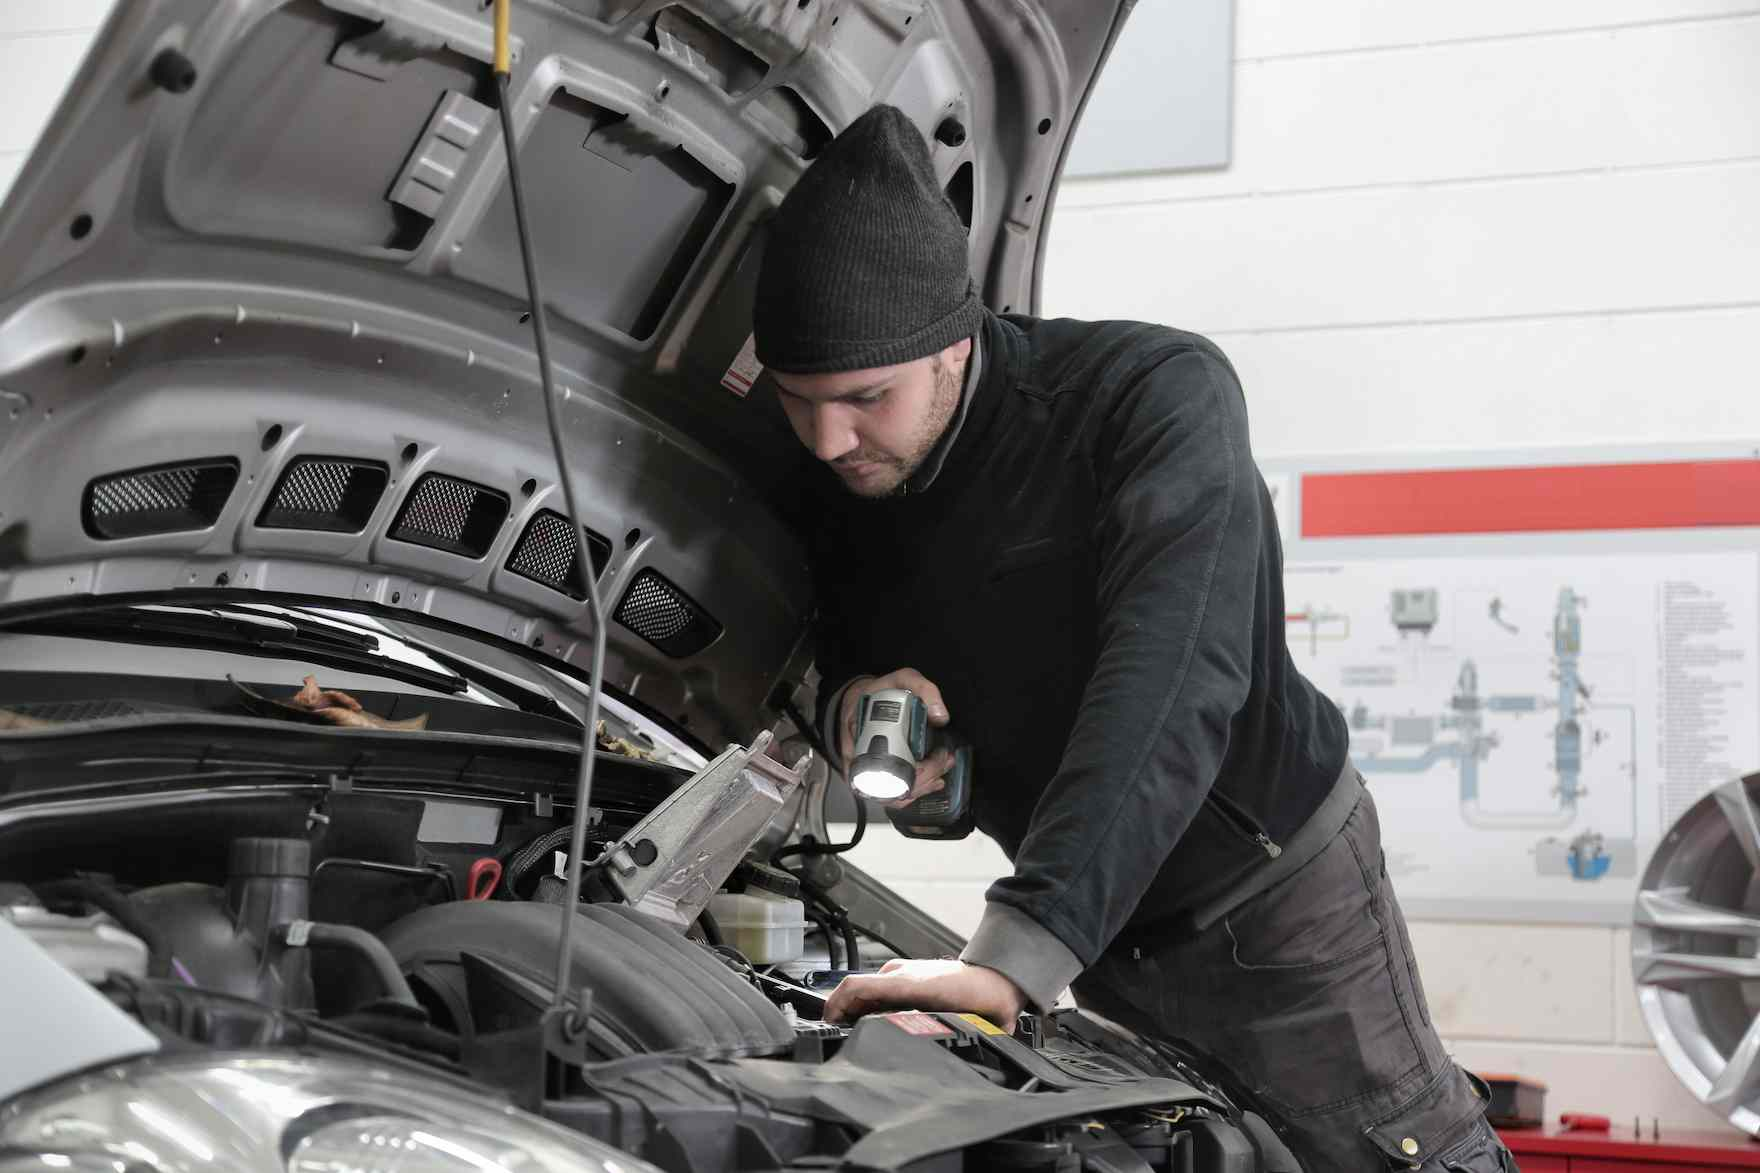 A man in a black beanie hat looks under the bonnet of a car made by the volkswagen car manufacturers that has the volkswagen polo model name